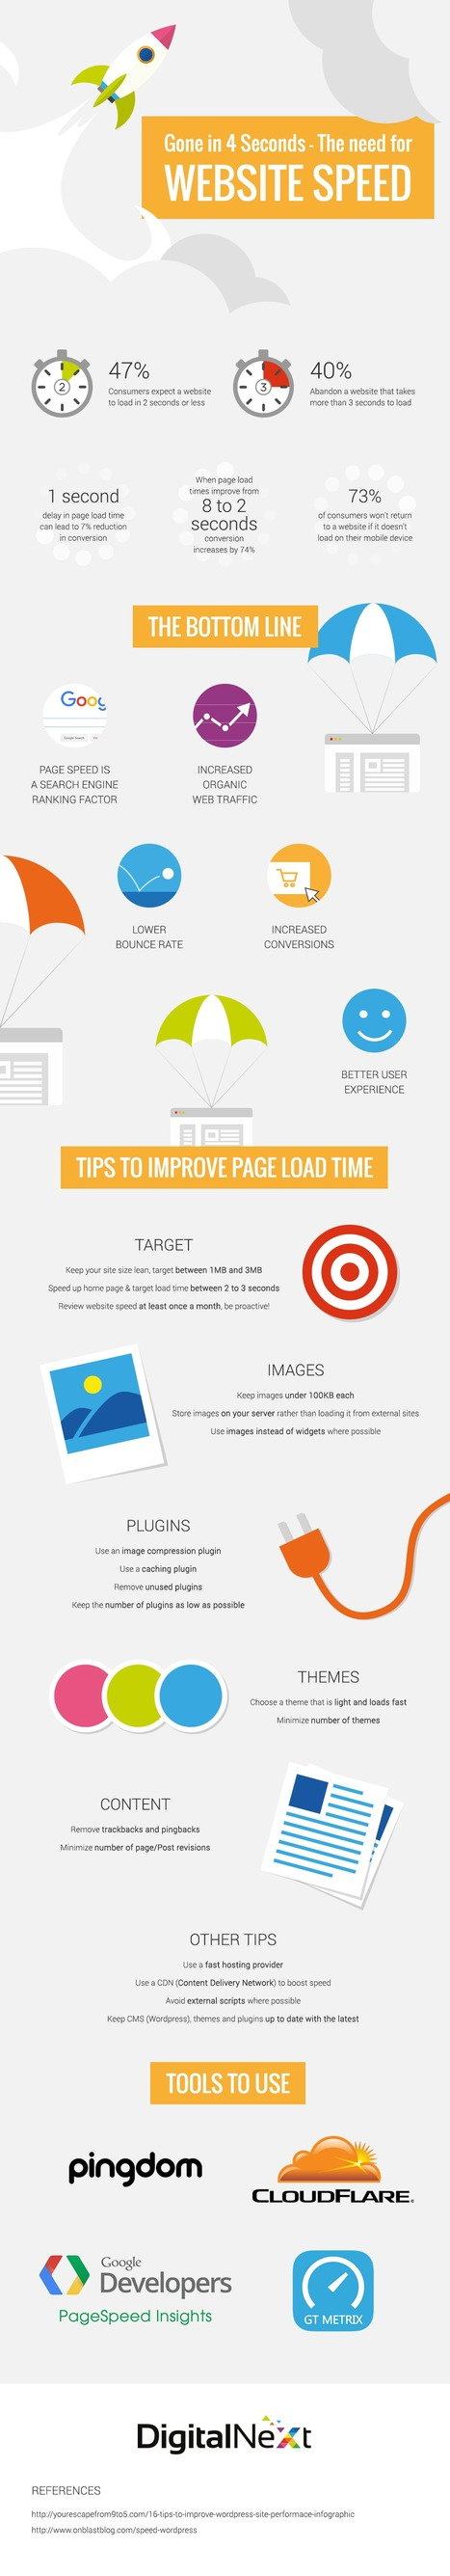 How to Load a Website Faster - Visual Contenting | Mance Creative - Graphic and Website Design | Scoop.it